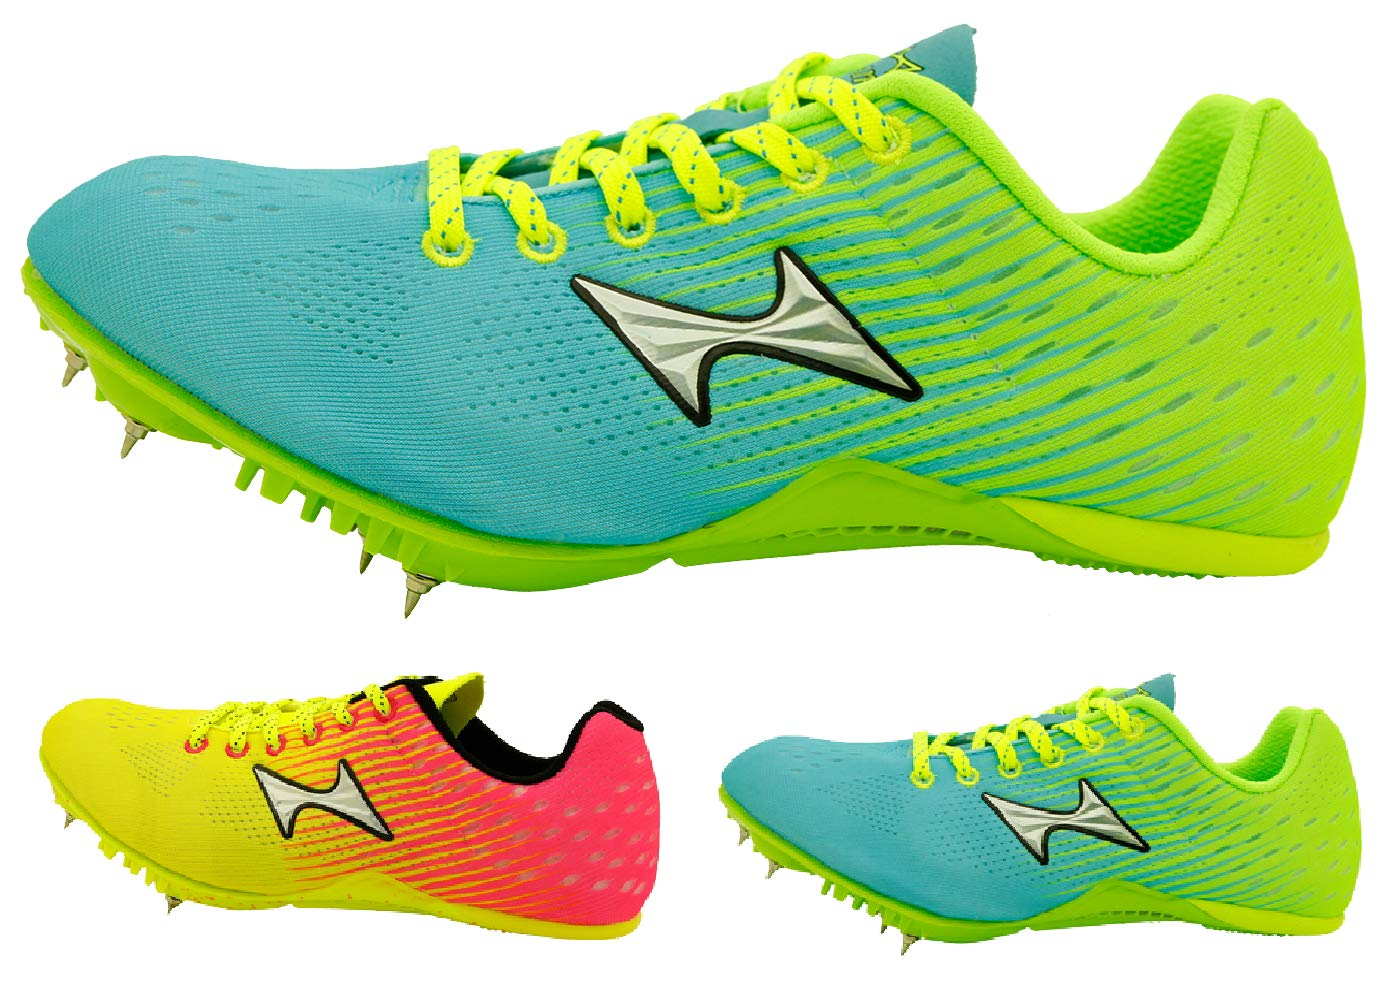 HEALTH Men's Women's Track Spike Running Sprint Shoes Mesh Breathable Track and Field Spikes Professional Athletic Shoes 135 Lemon & Azure